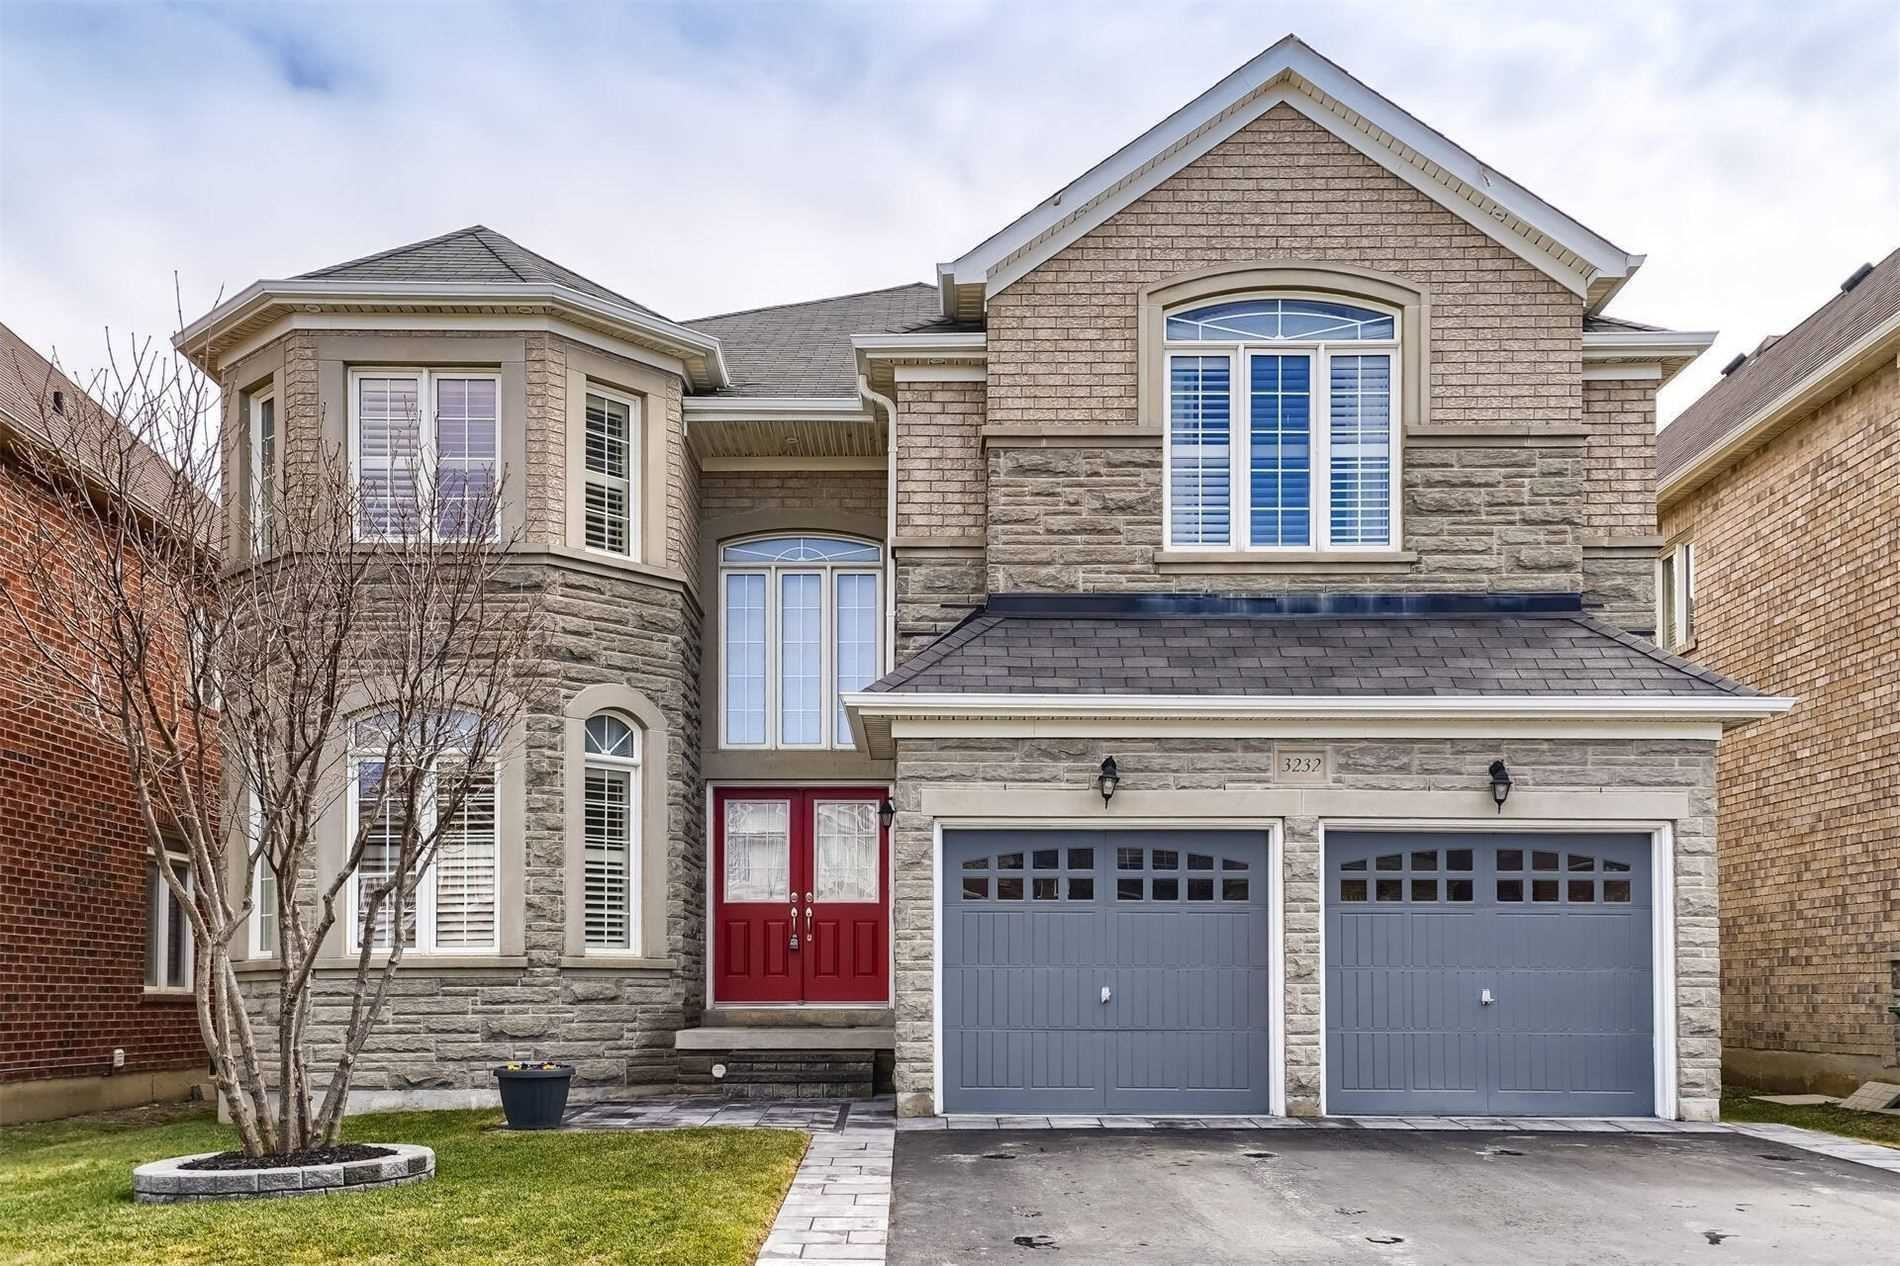 3232 Tacc Dr, Mississauga, ON L5M 0H3 - MLS#: W5229914